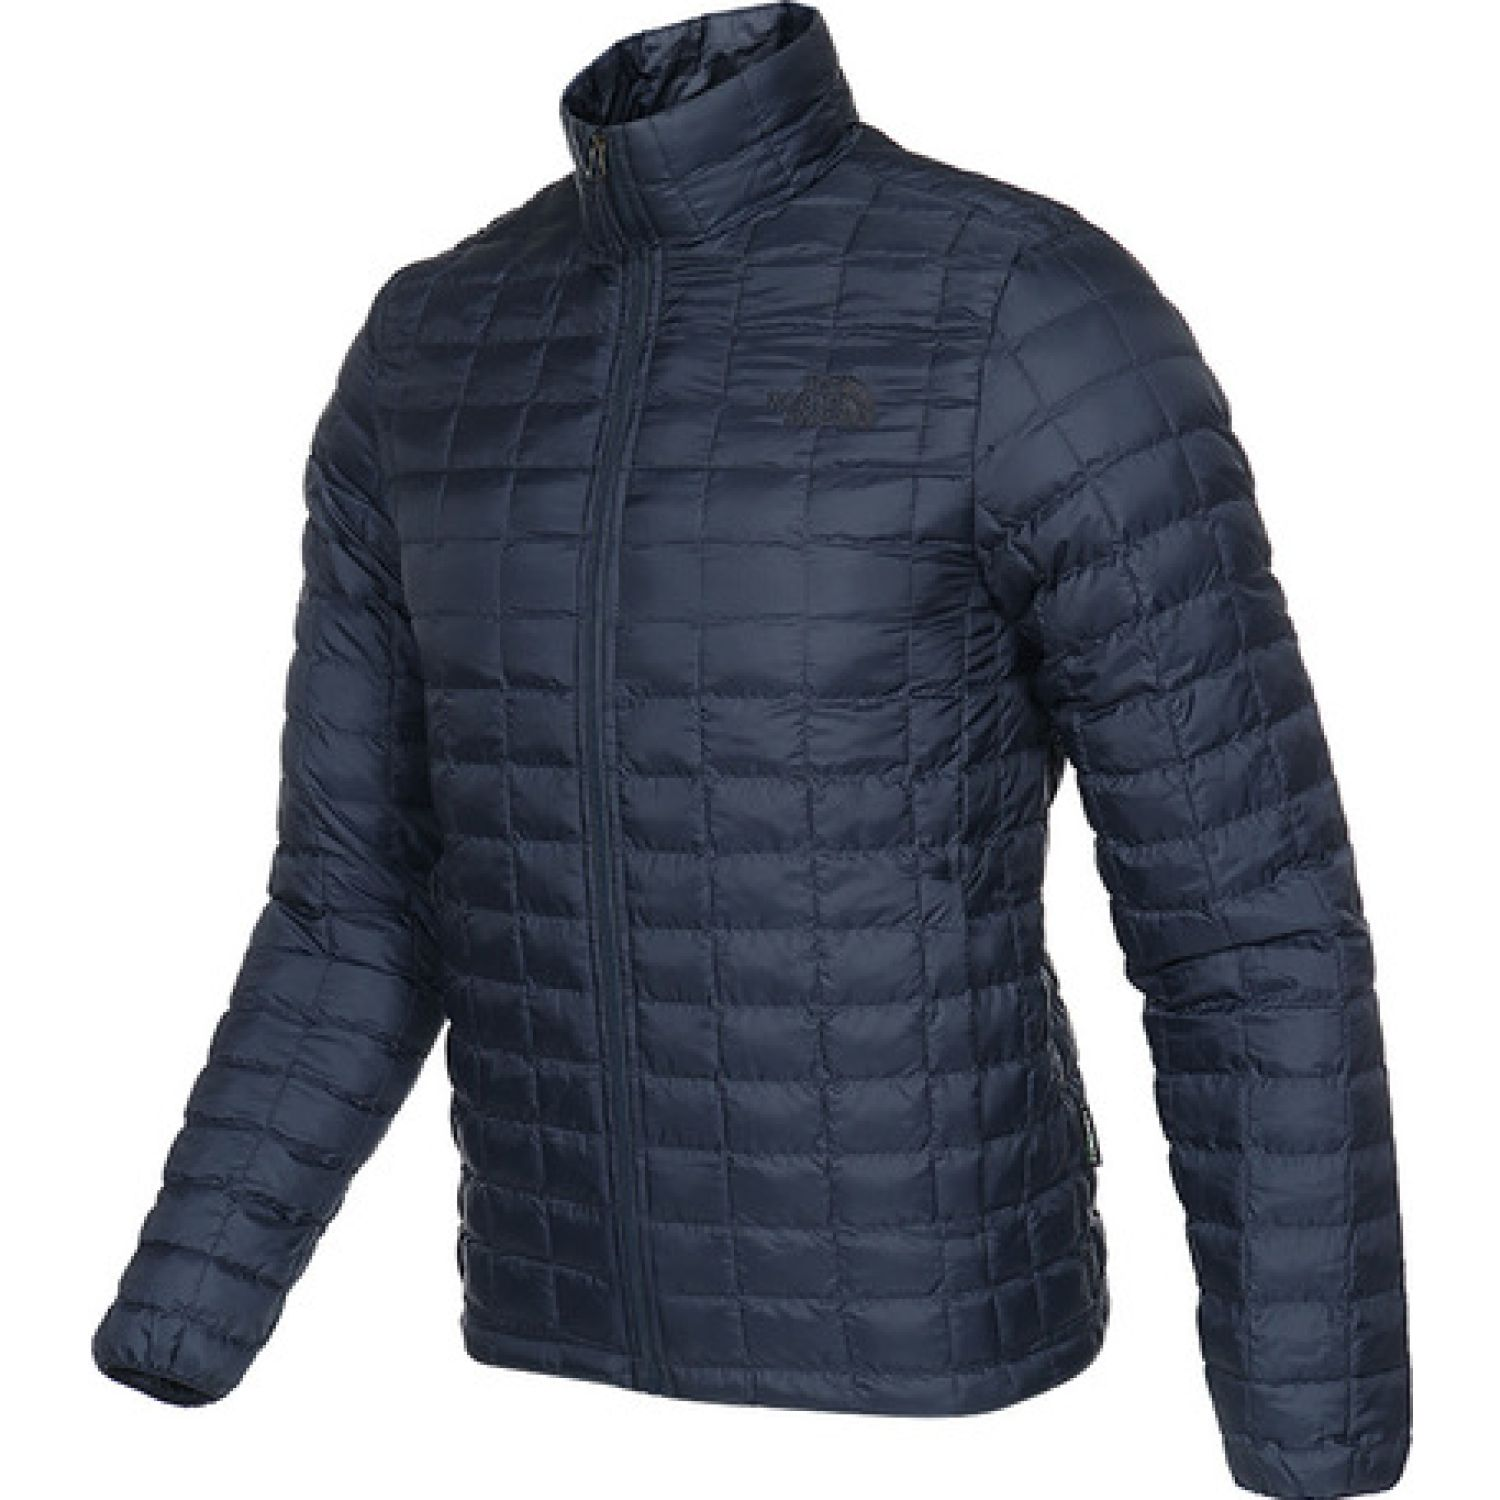 The North Face M THERMOBALL ECO JACKET Navy Impermeables y chaquetas